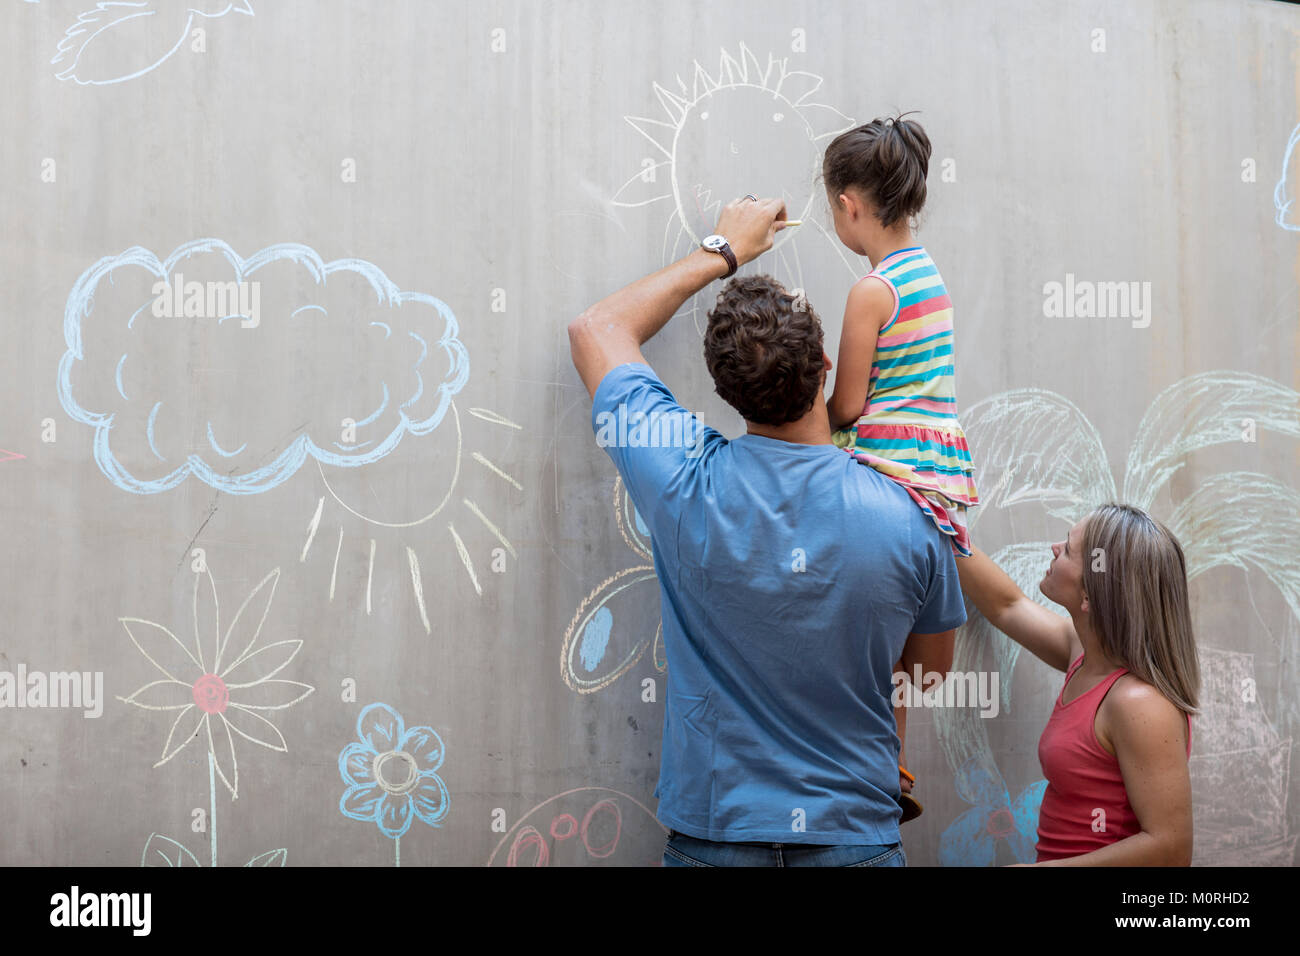 Family drawing colourful pictures with chalk on a concrete wall - Stock Image